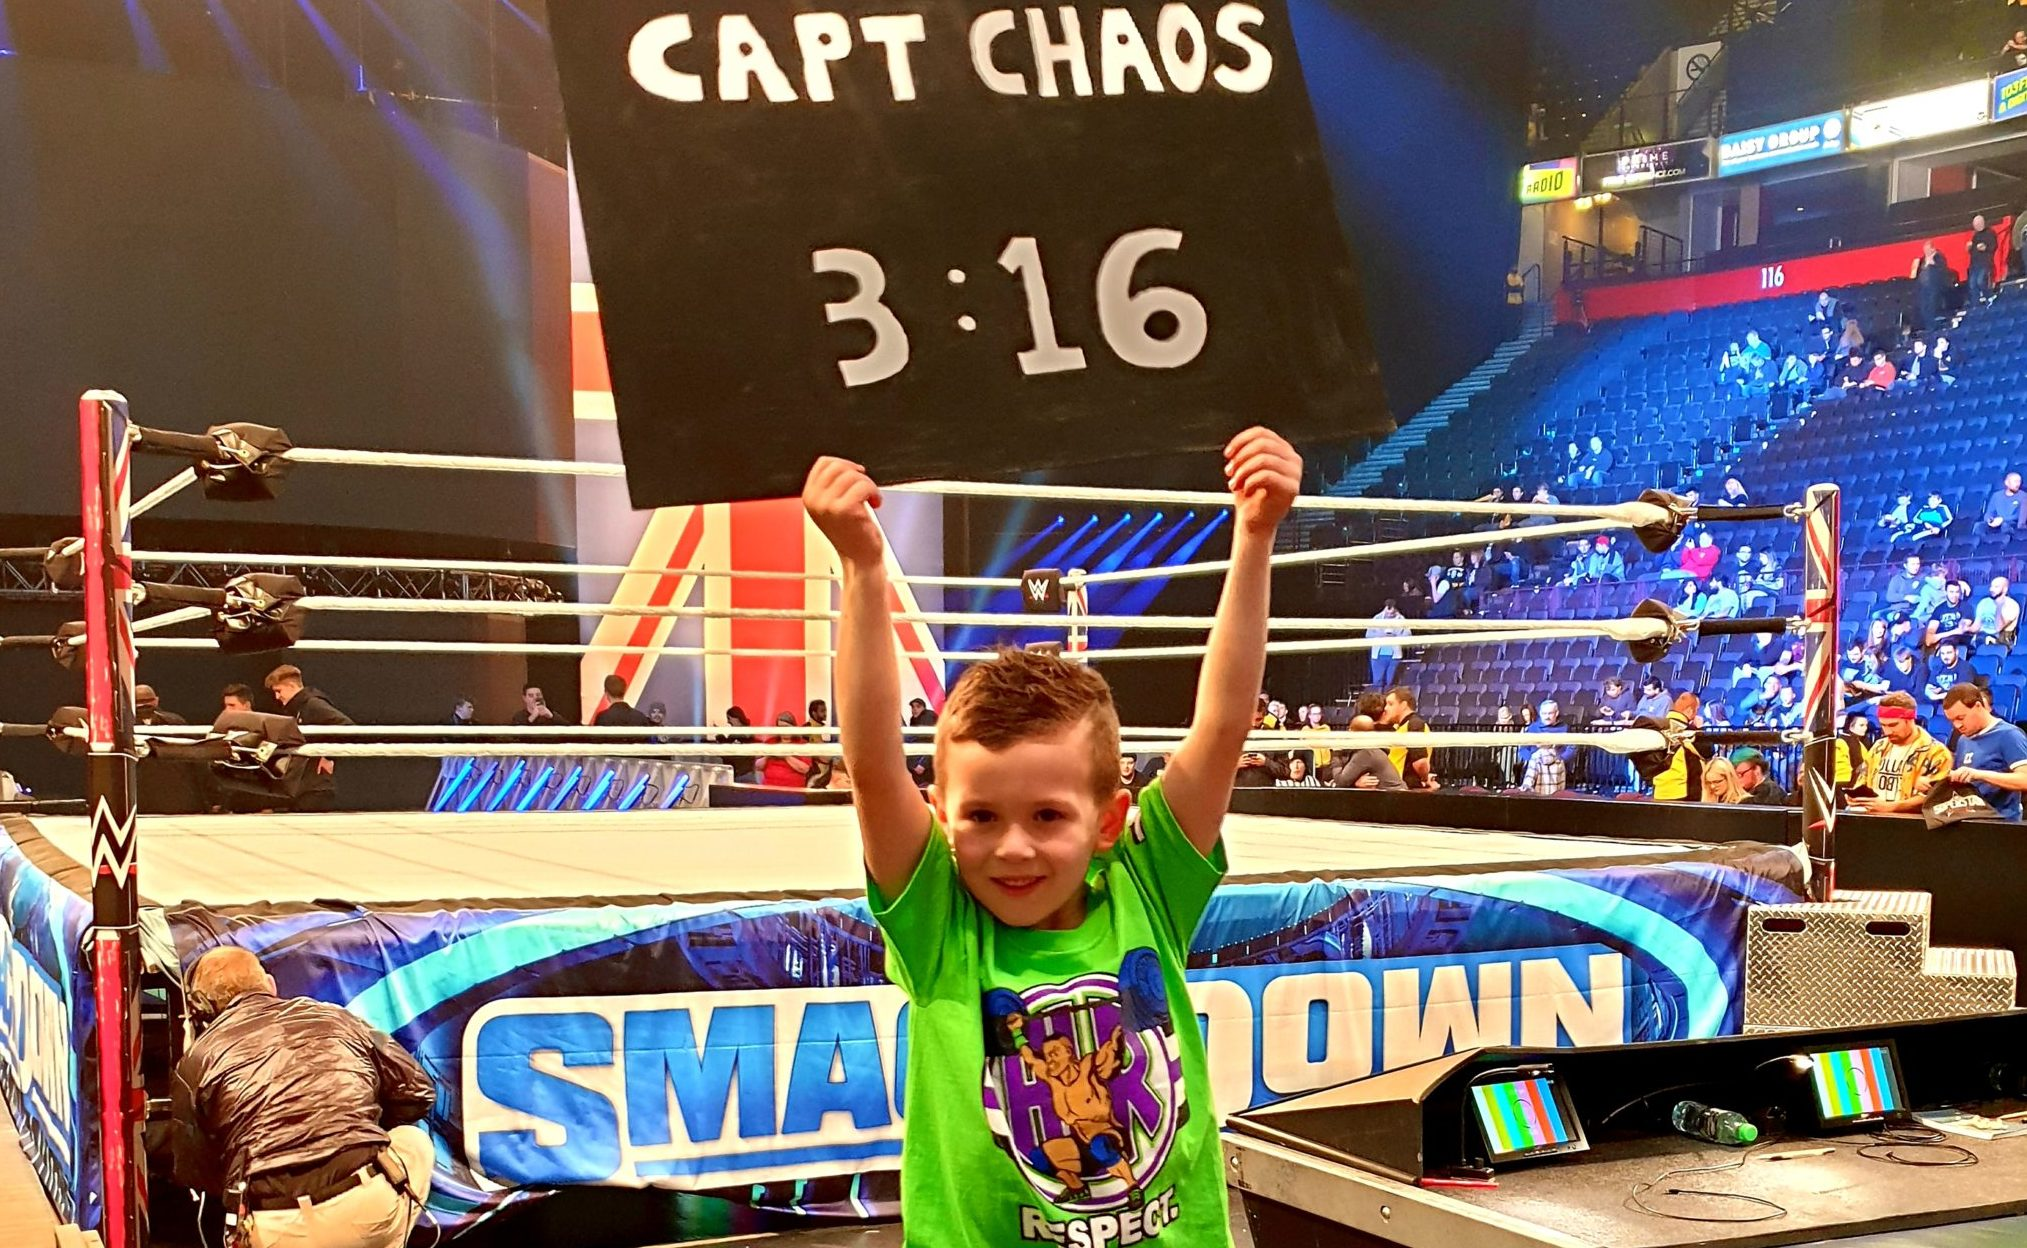 Captain Chaos, a.k.a. Caelan McFaulds at a WWE show